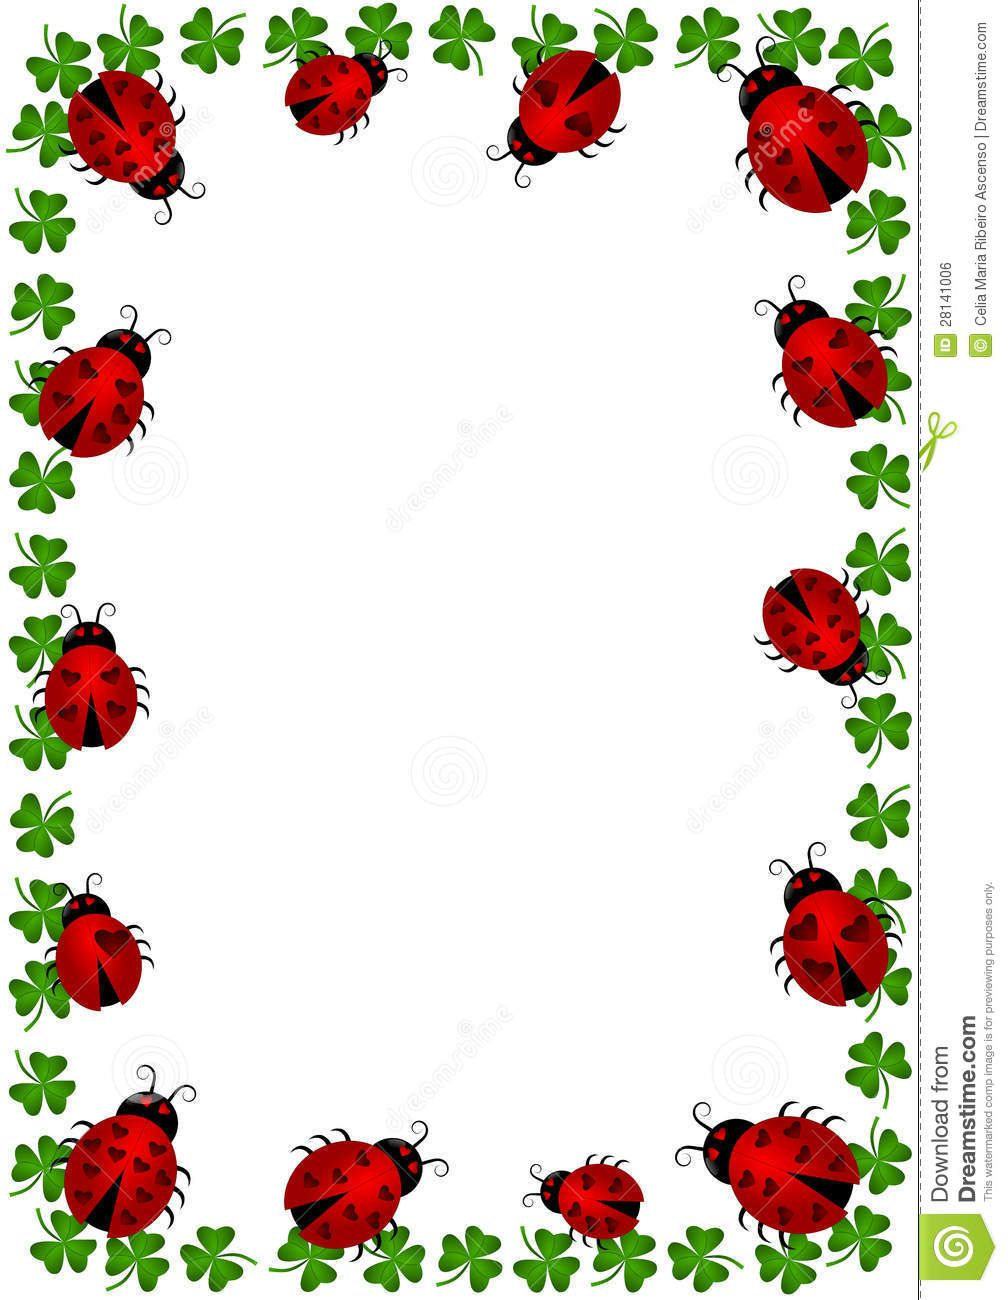 Ladybugs Border Frame With Clovers - Download From Over 64 Million ...